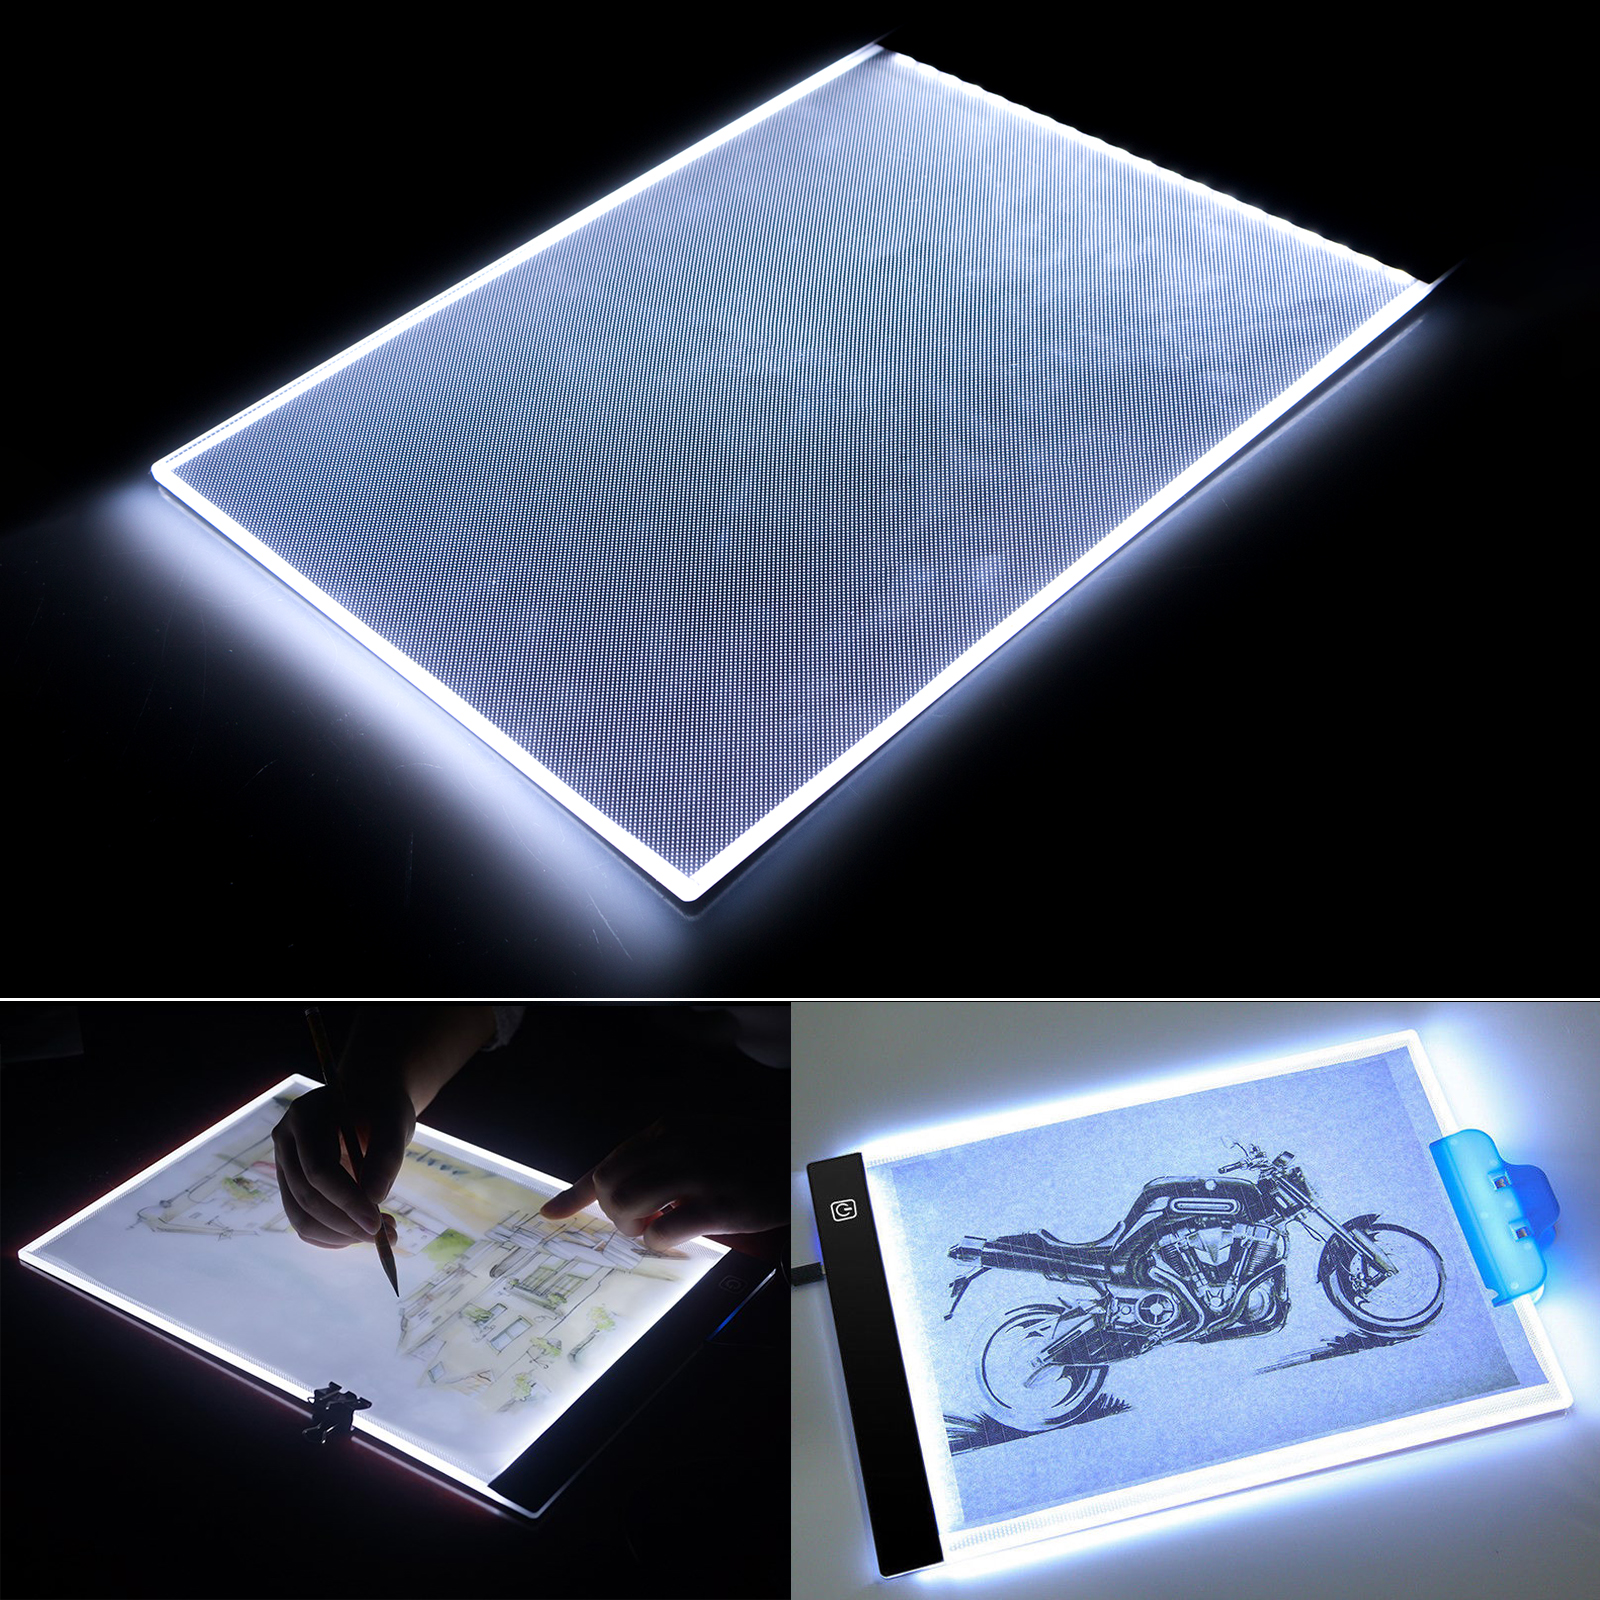 TSV A4 Ultra-thin Portable LED Light Box tracer USB Power LED Artcraft Tracing Light Table for Artists,Drawing, Sketching, Animation